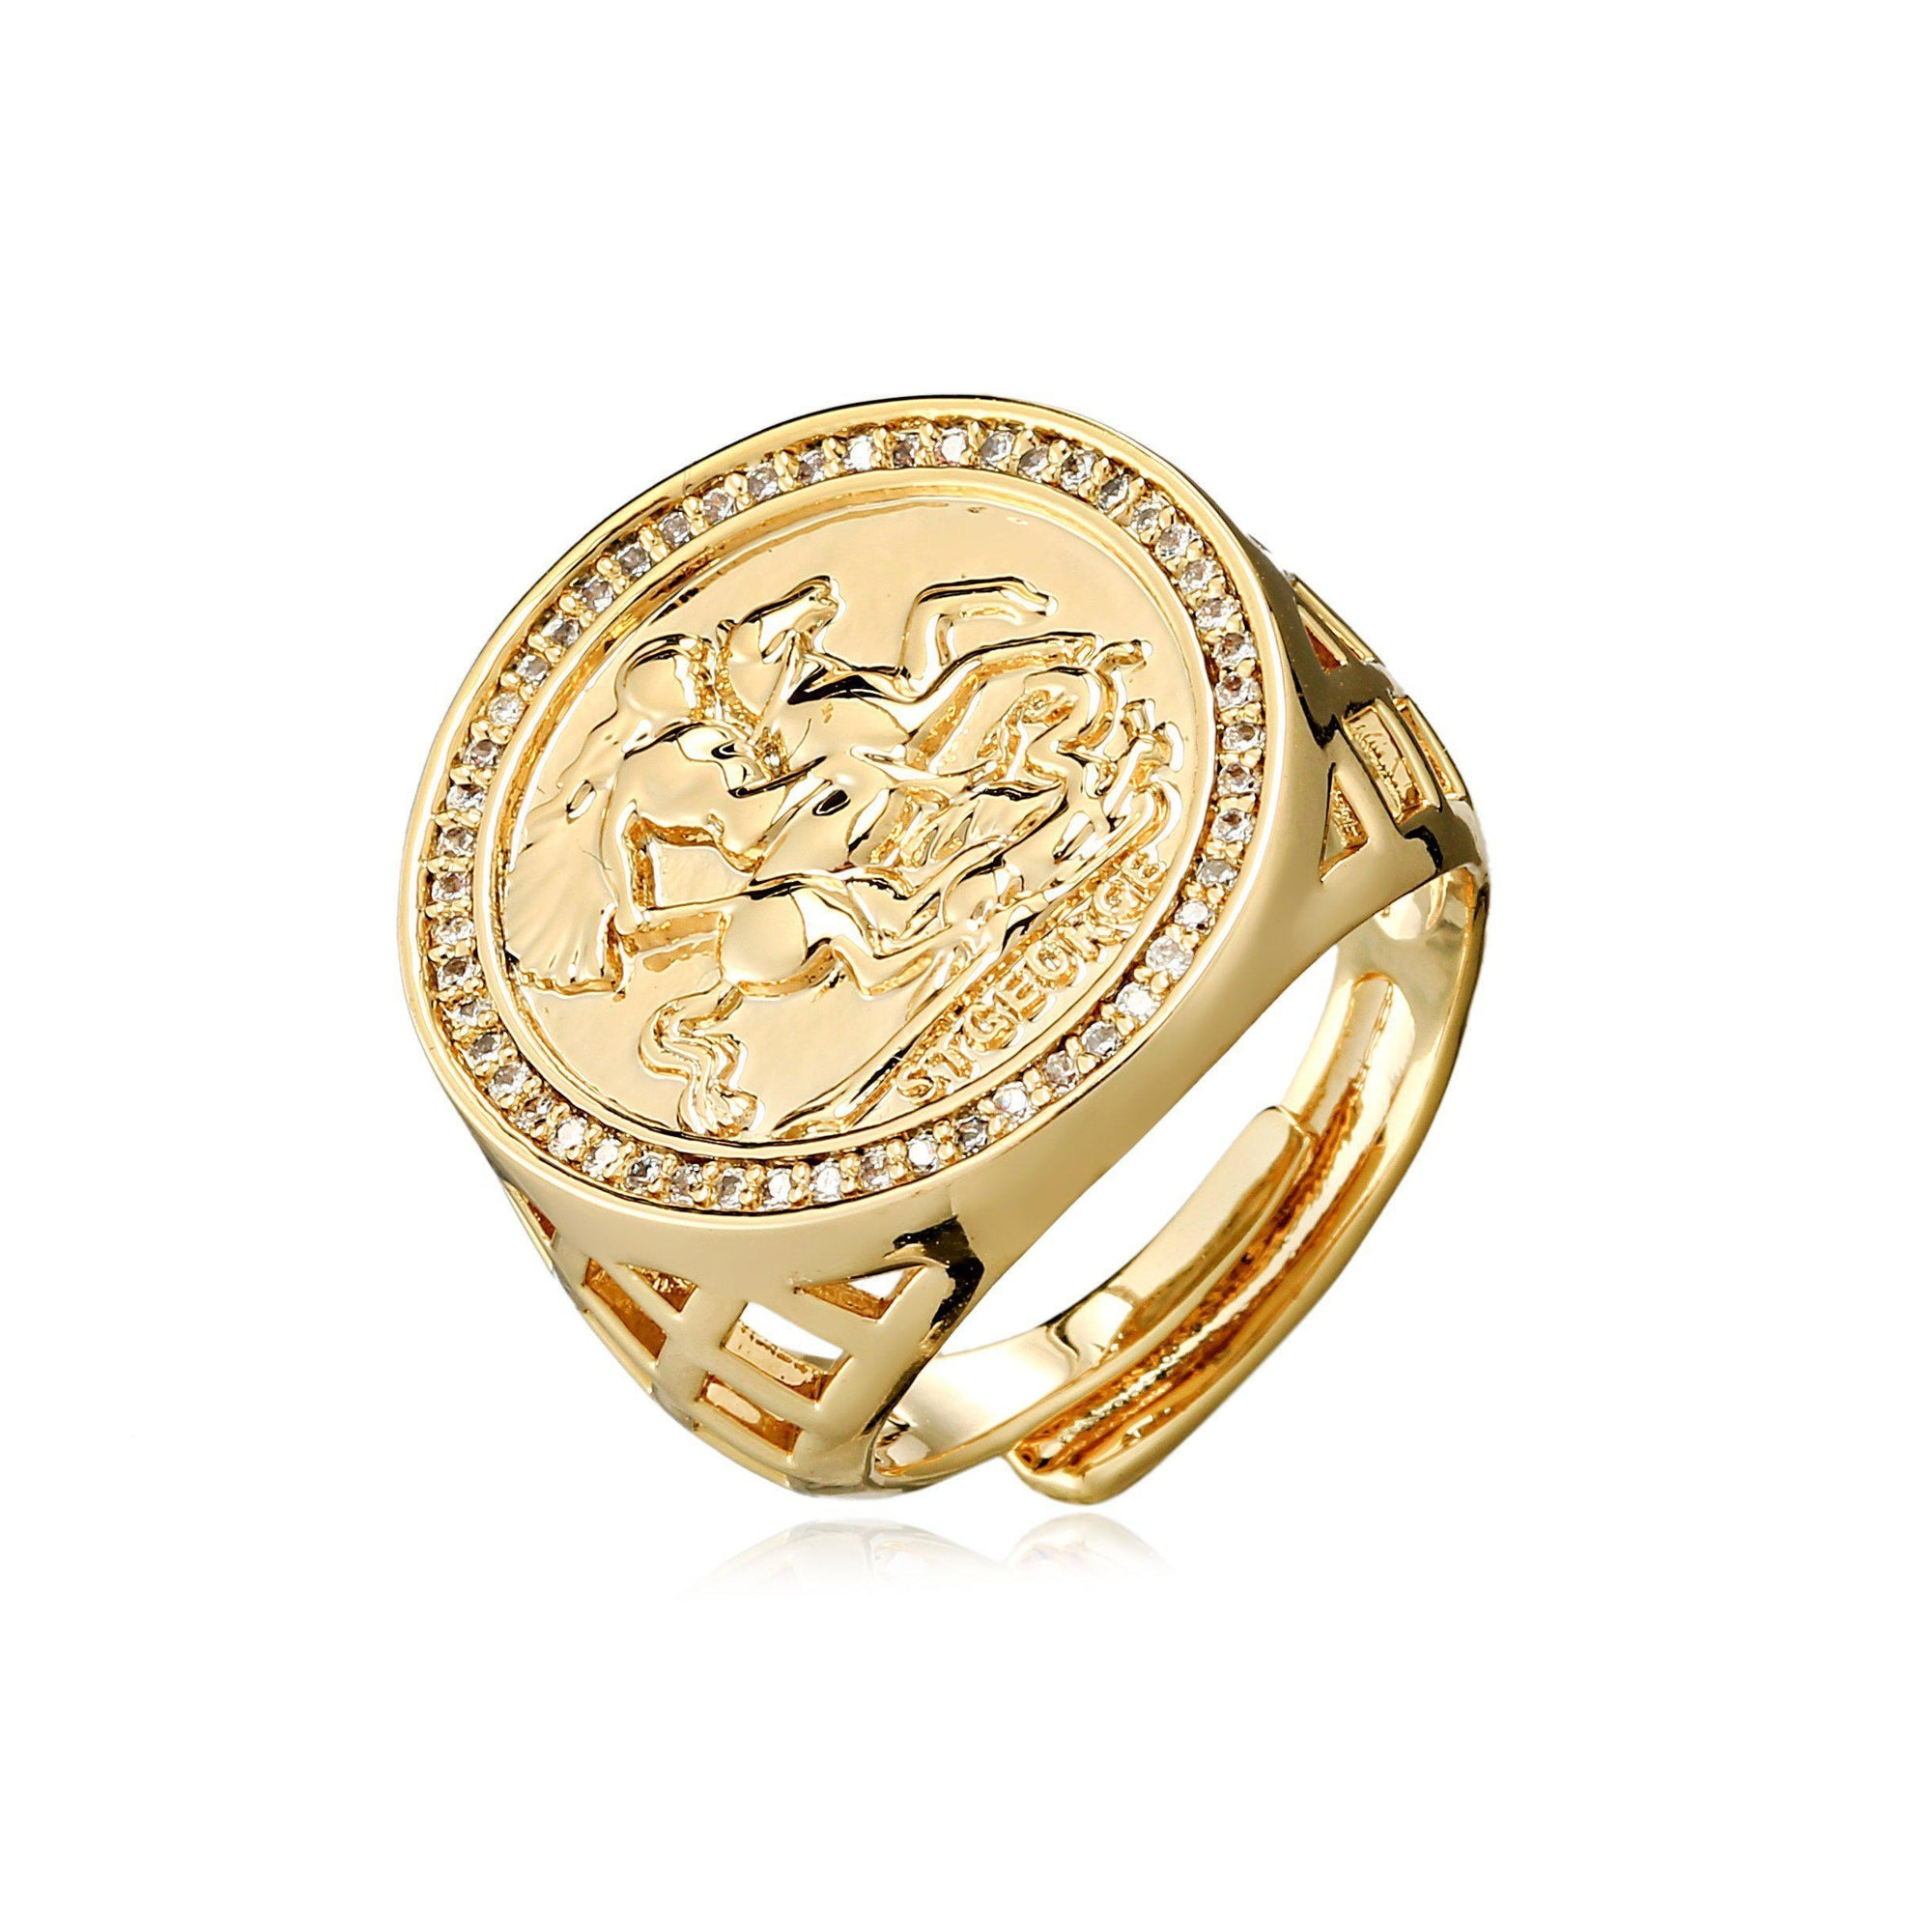 Gold St George Sovereign Ring with Stones-Rings-The Bling King-Bling King